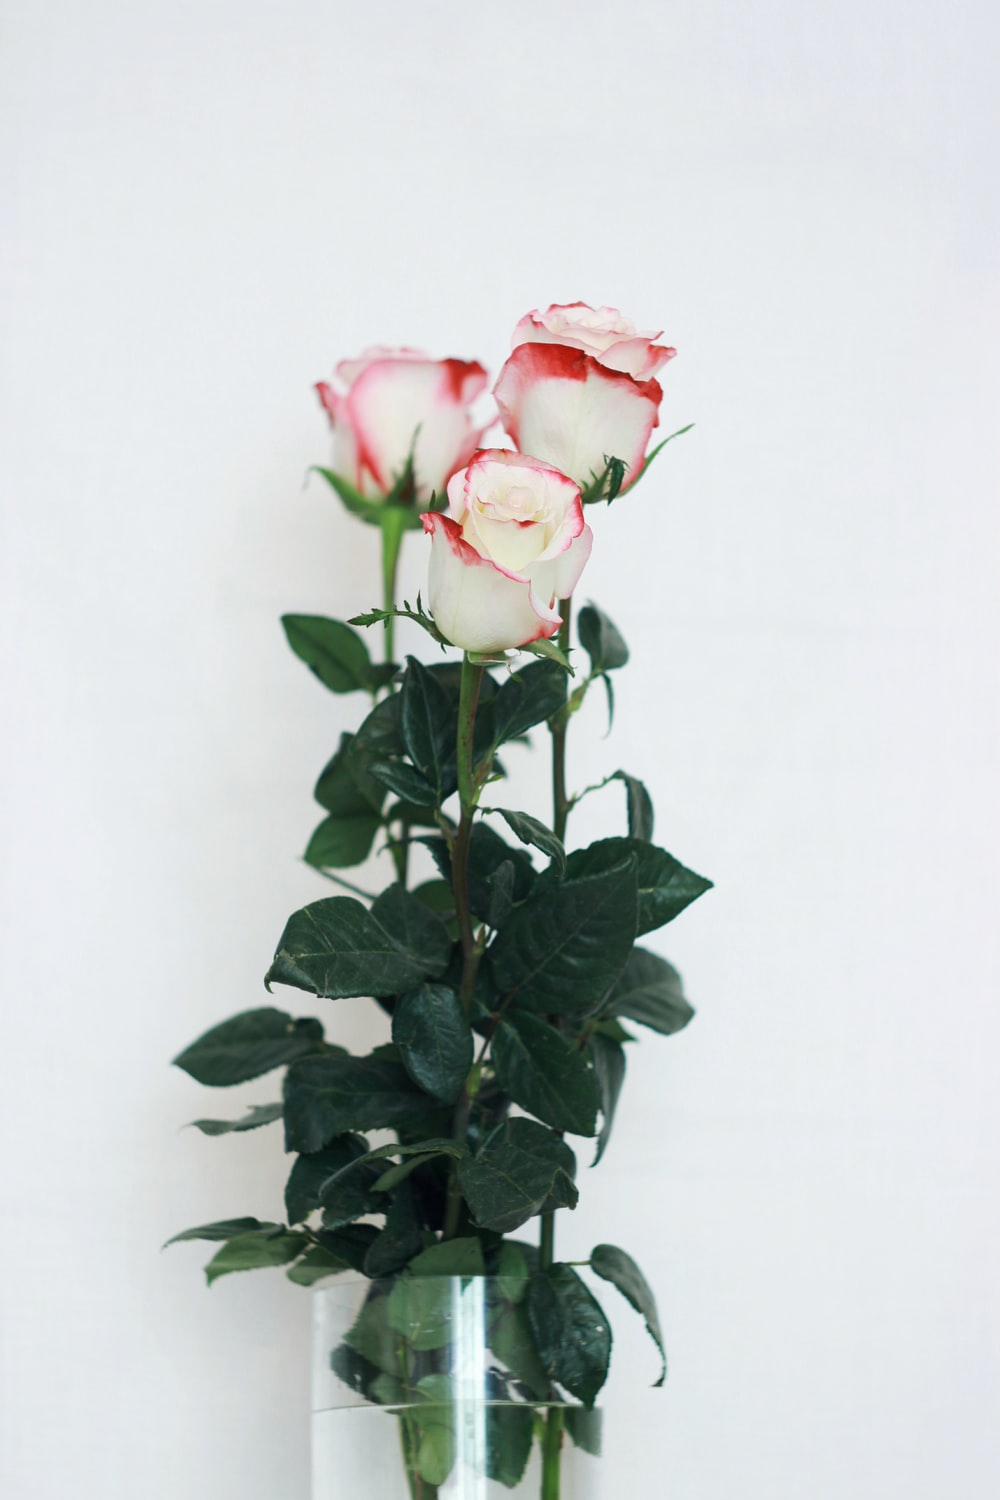 white-and-red roses